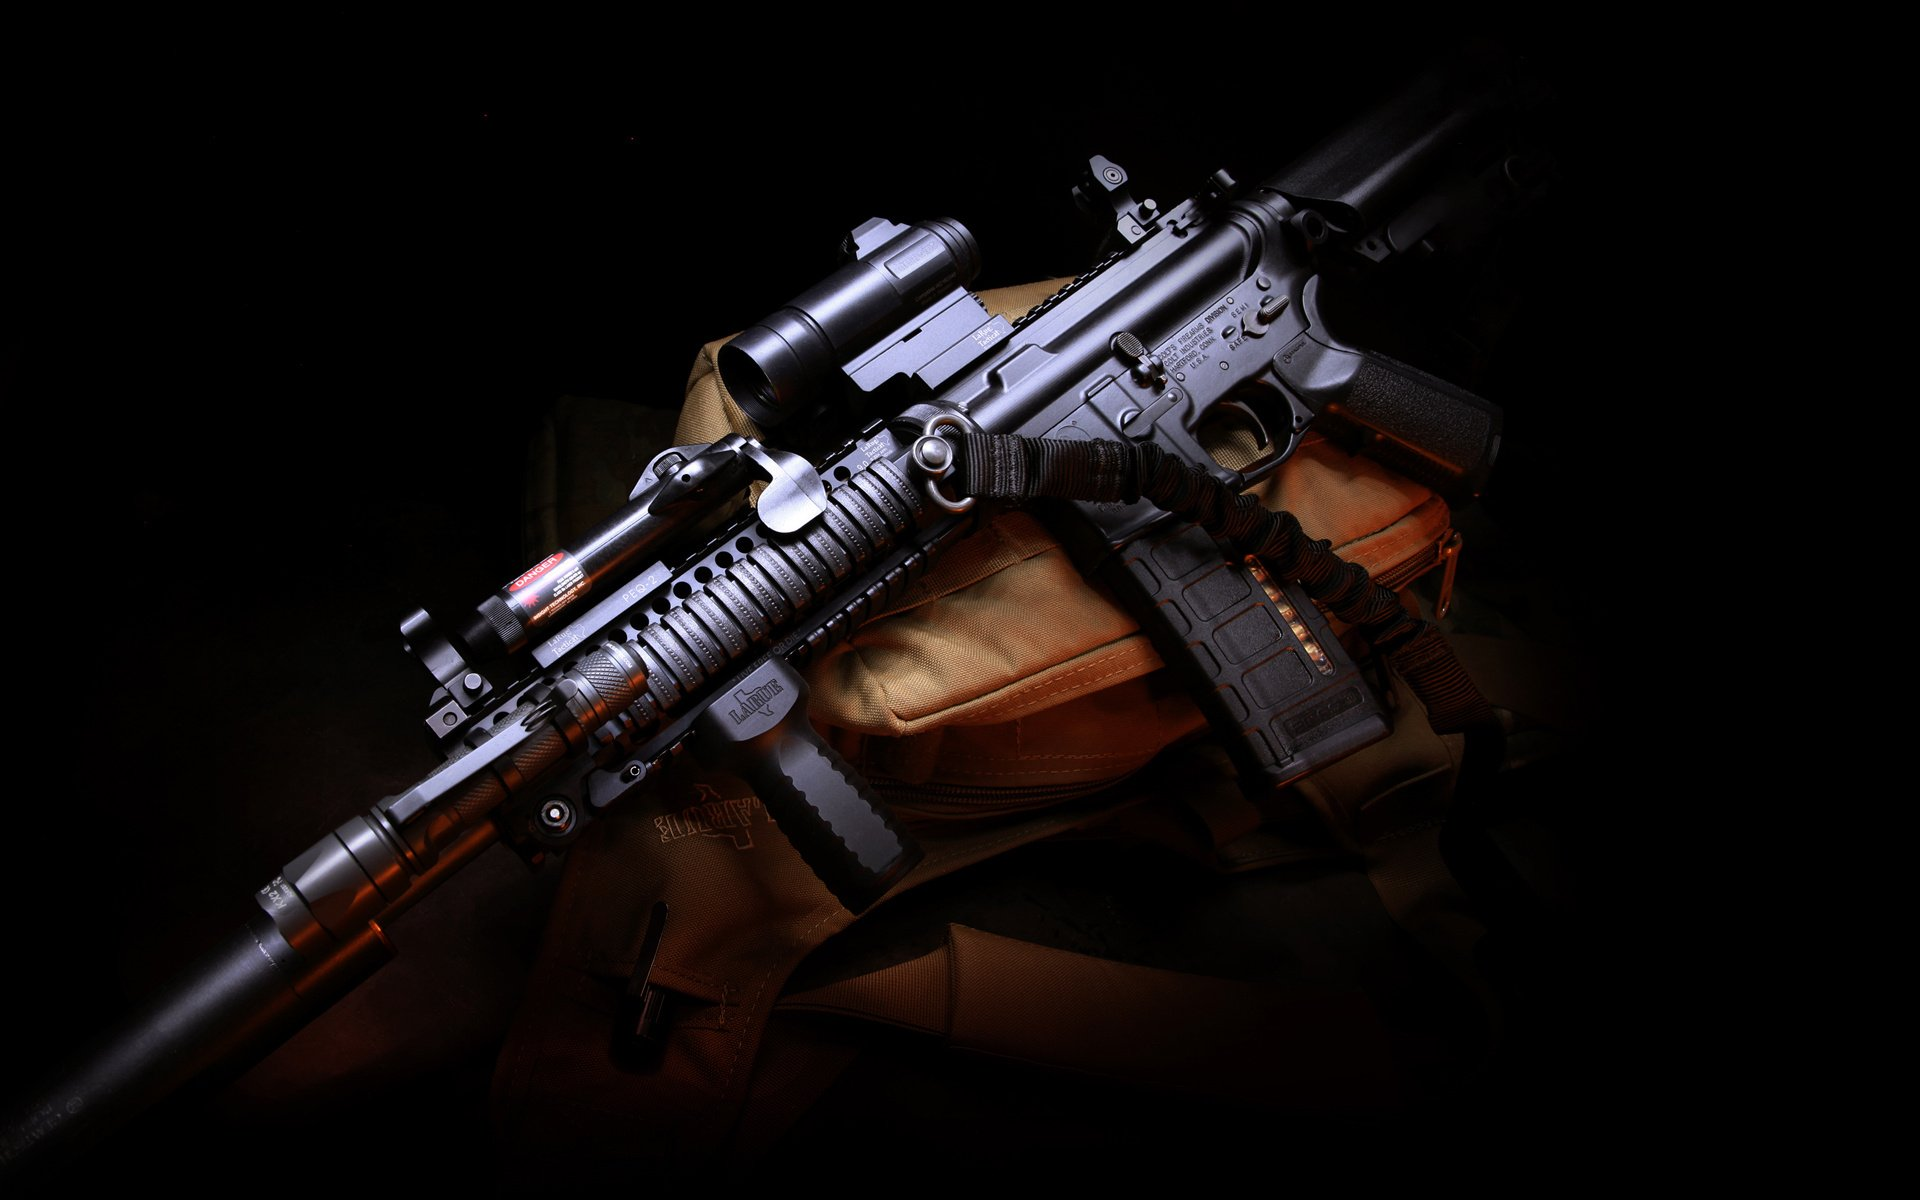 Weapon M4 Assault Carbine Gun Rifle Military Police Wallpaper 1920x1200